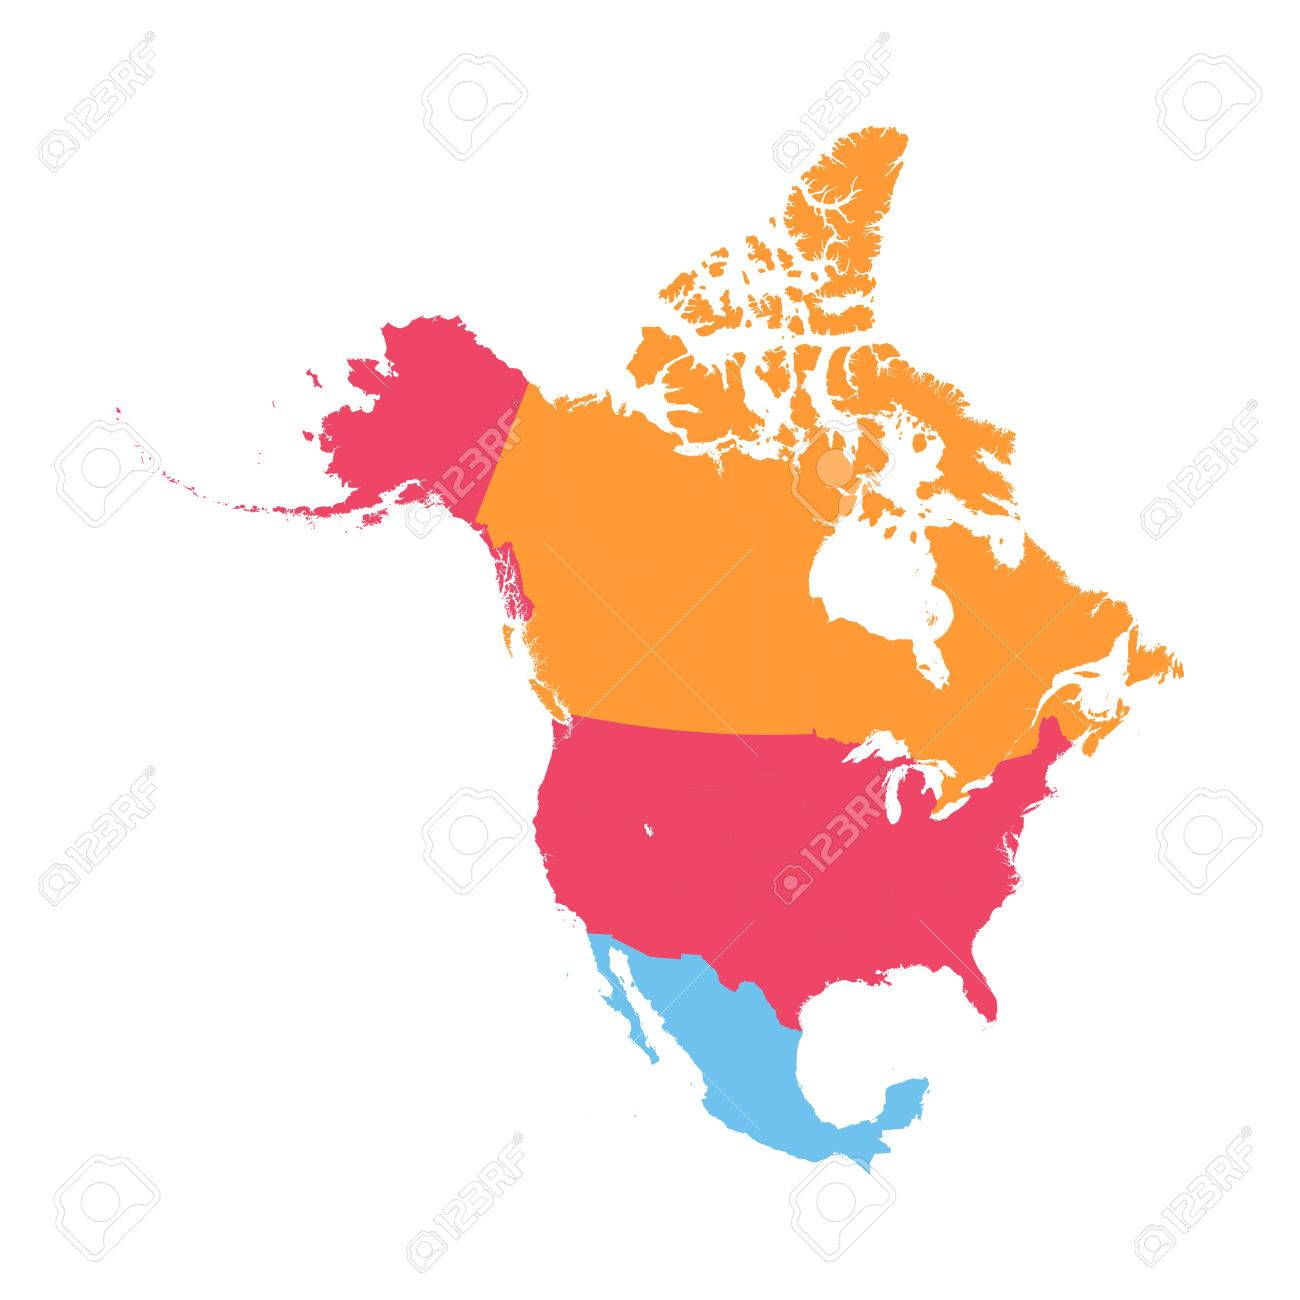 Free North America Map.North America Map Royalty Free Cliparts Vectors And Stock